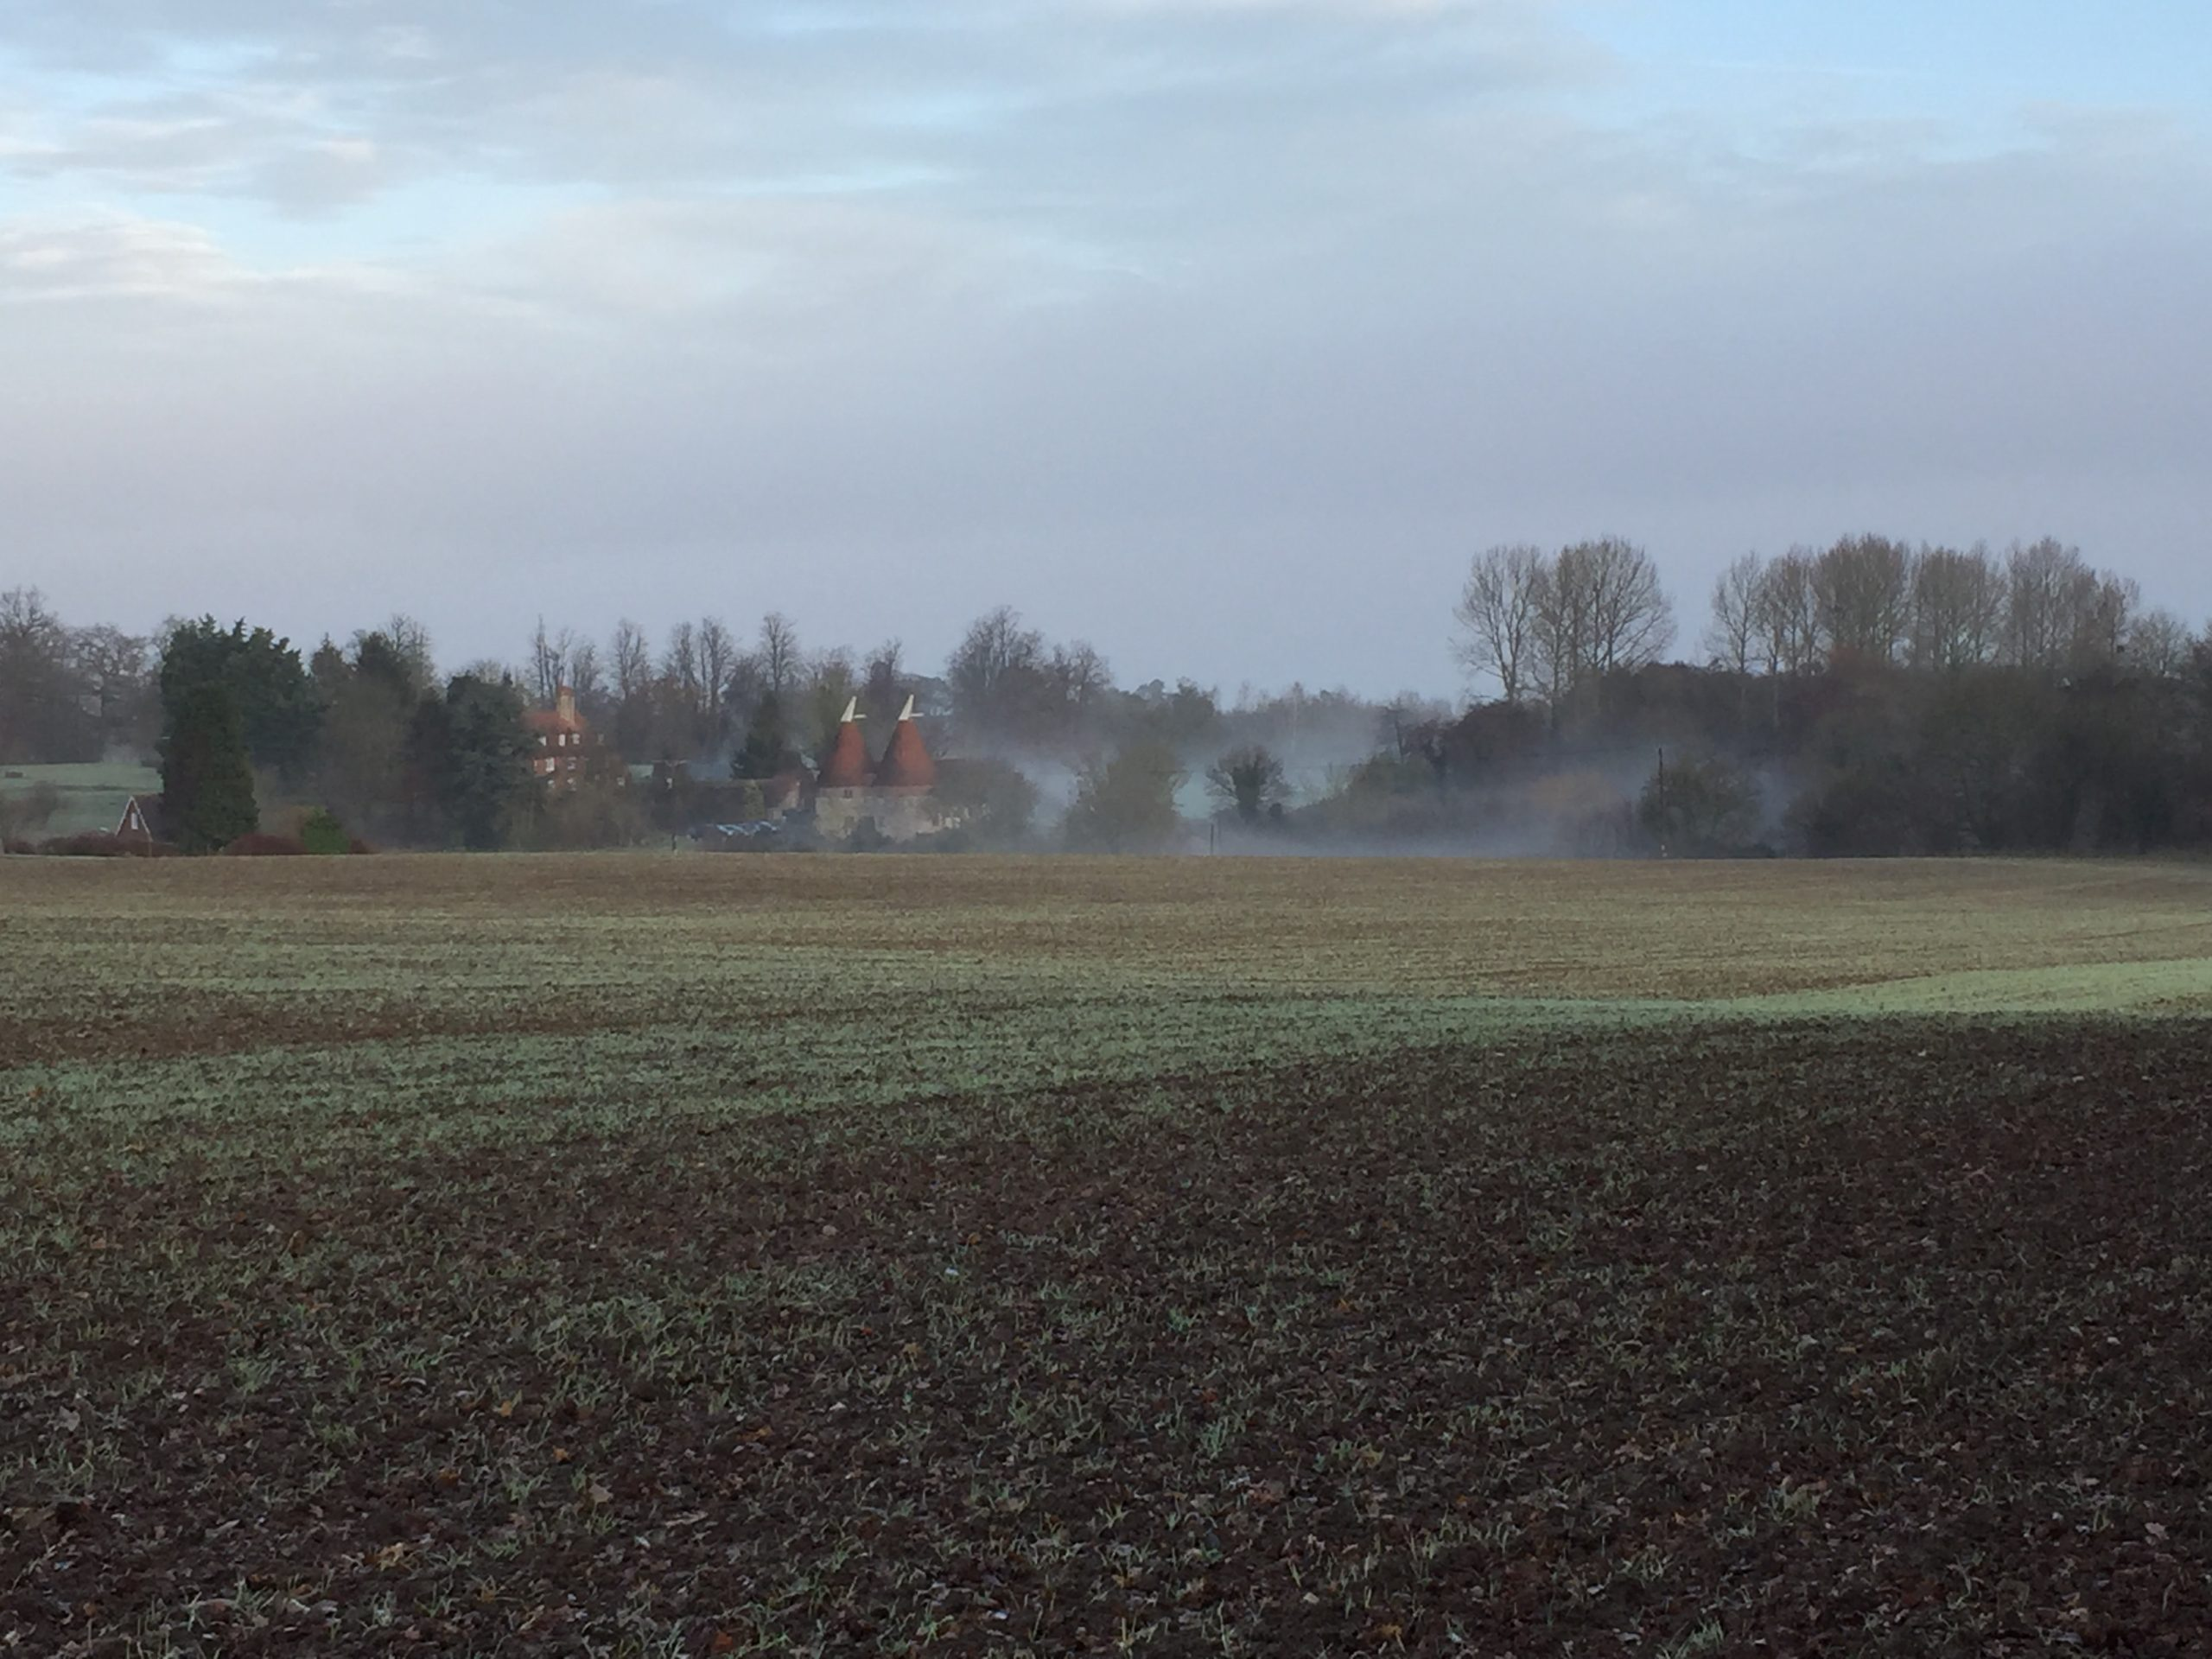 Bowley Oast with Bowley Farmhouse behind on a mist morning